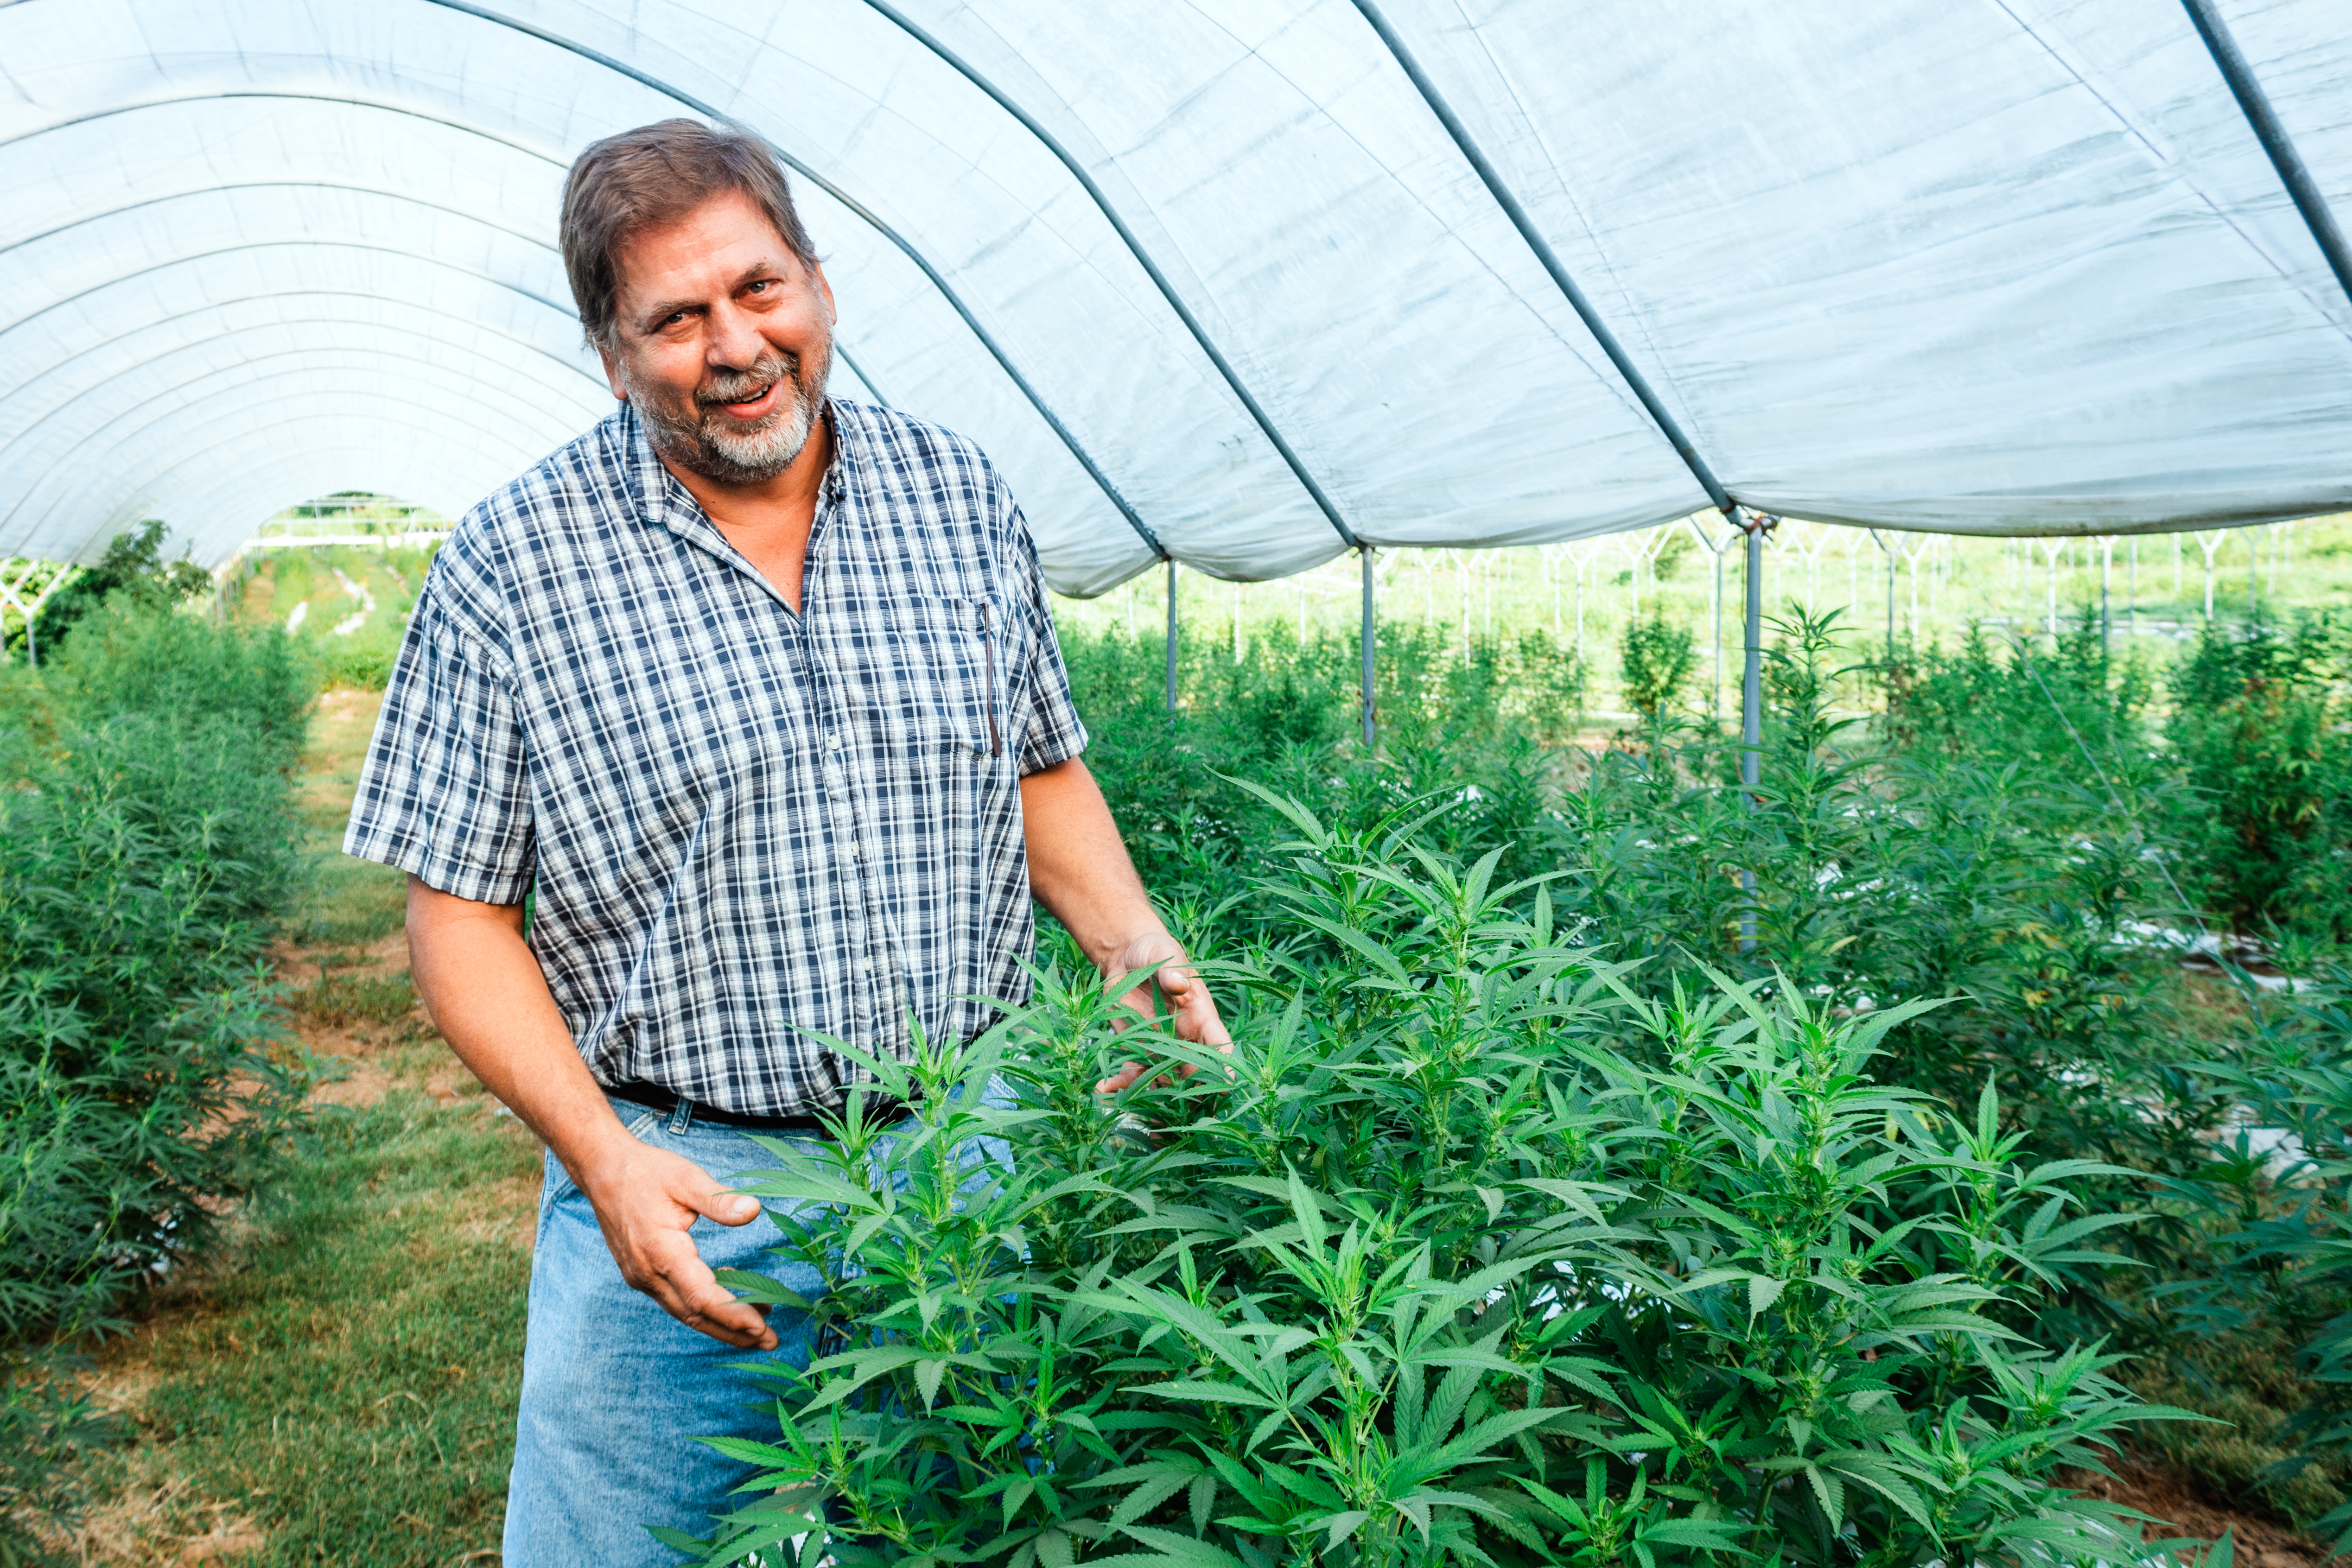 Man smiling and gesturing over cannabis plants